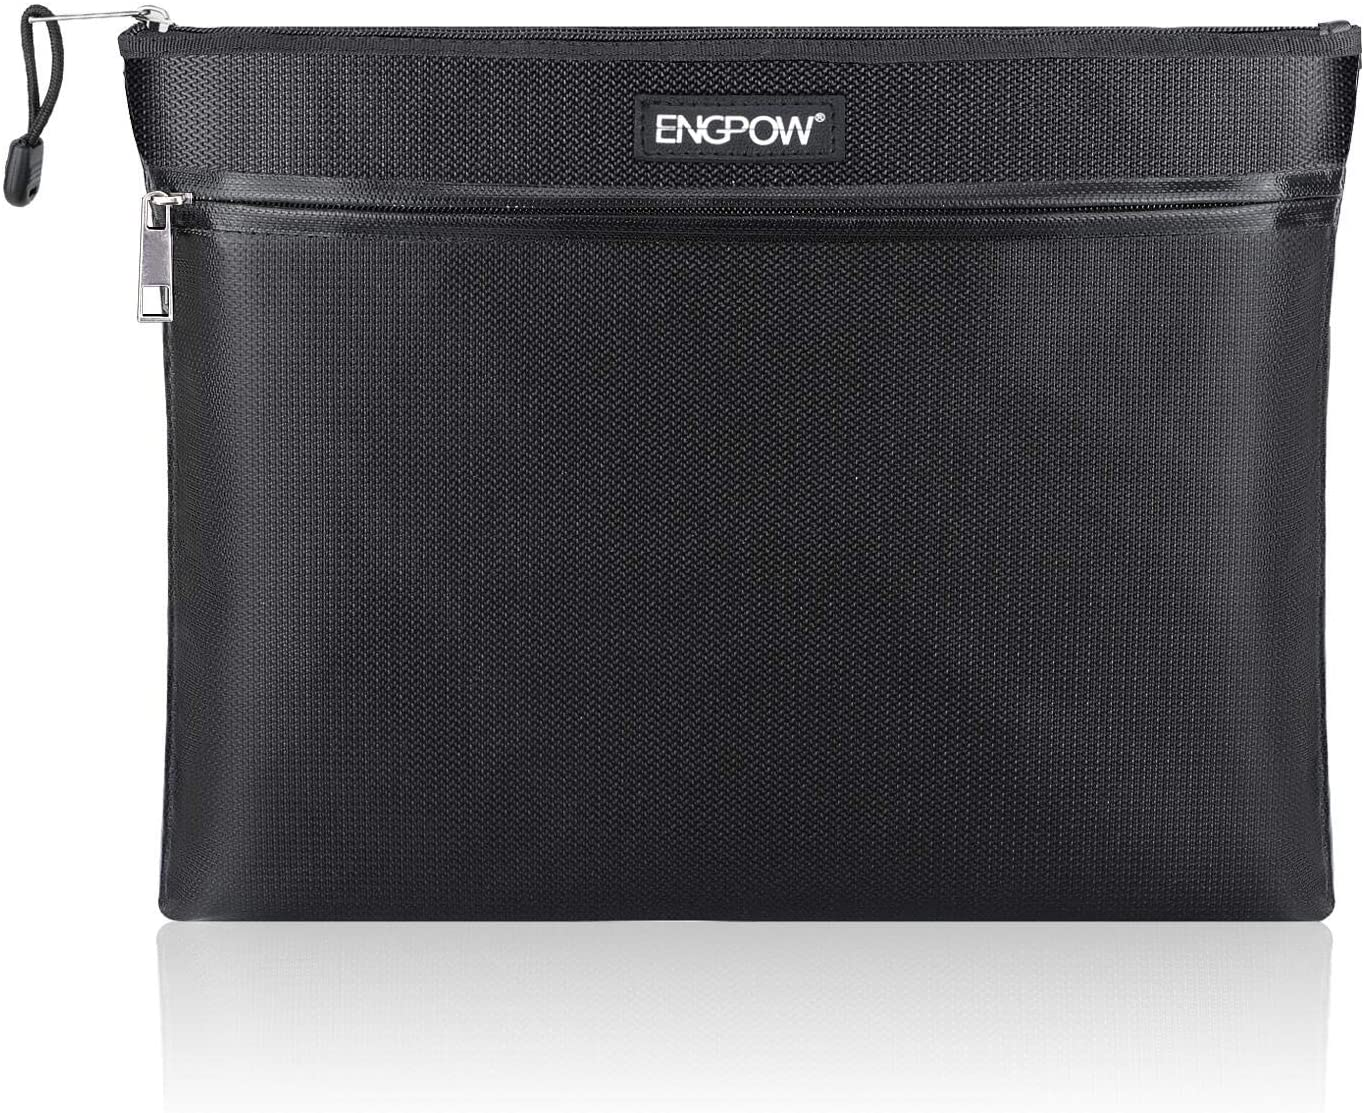 """ENGPOW Fireproof Document Bags 15/"""" x 11/"""" Two Pockets Two Zippers Fire and Wat..."""